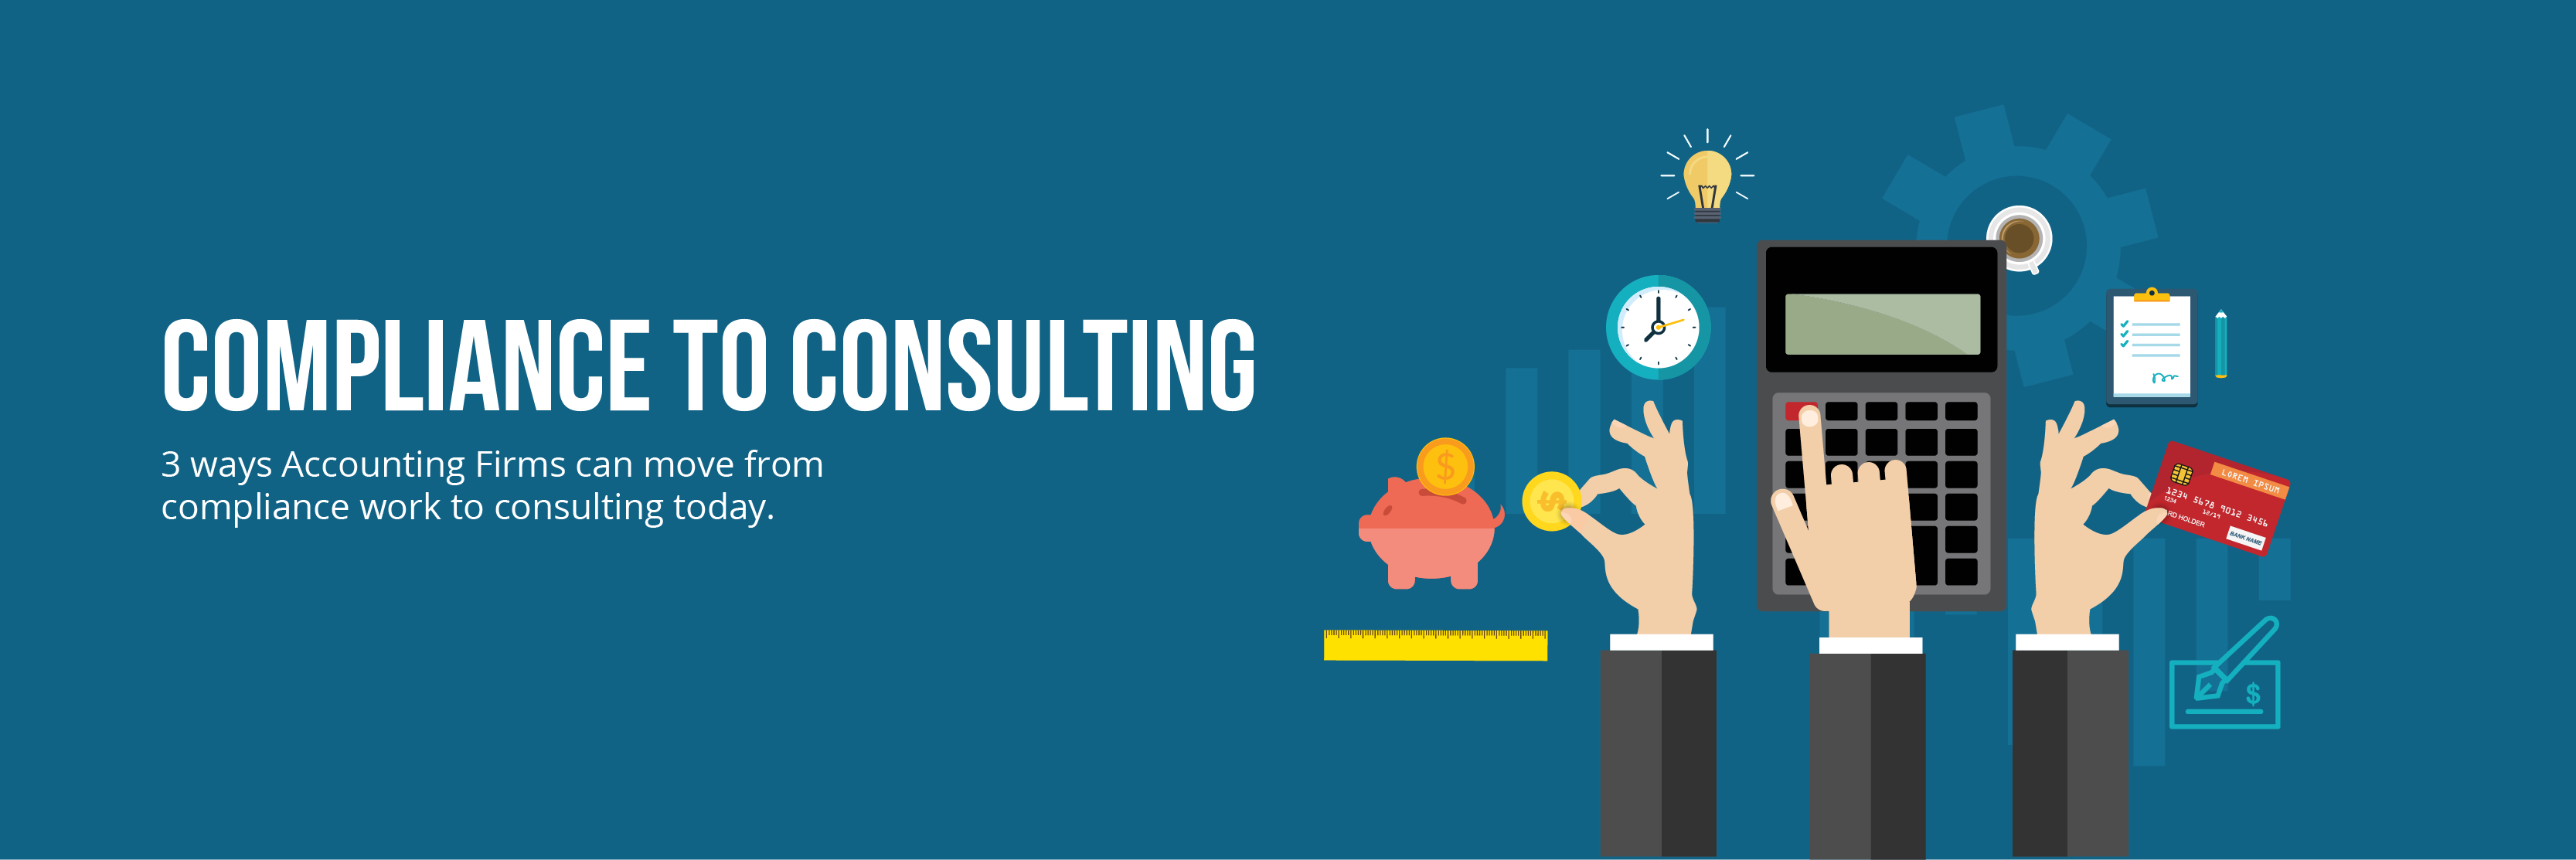 3 ways accountants can move from compliance to consulting today